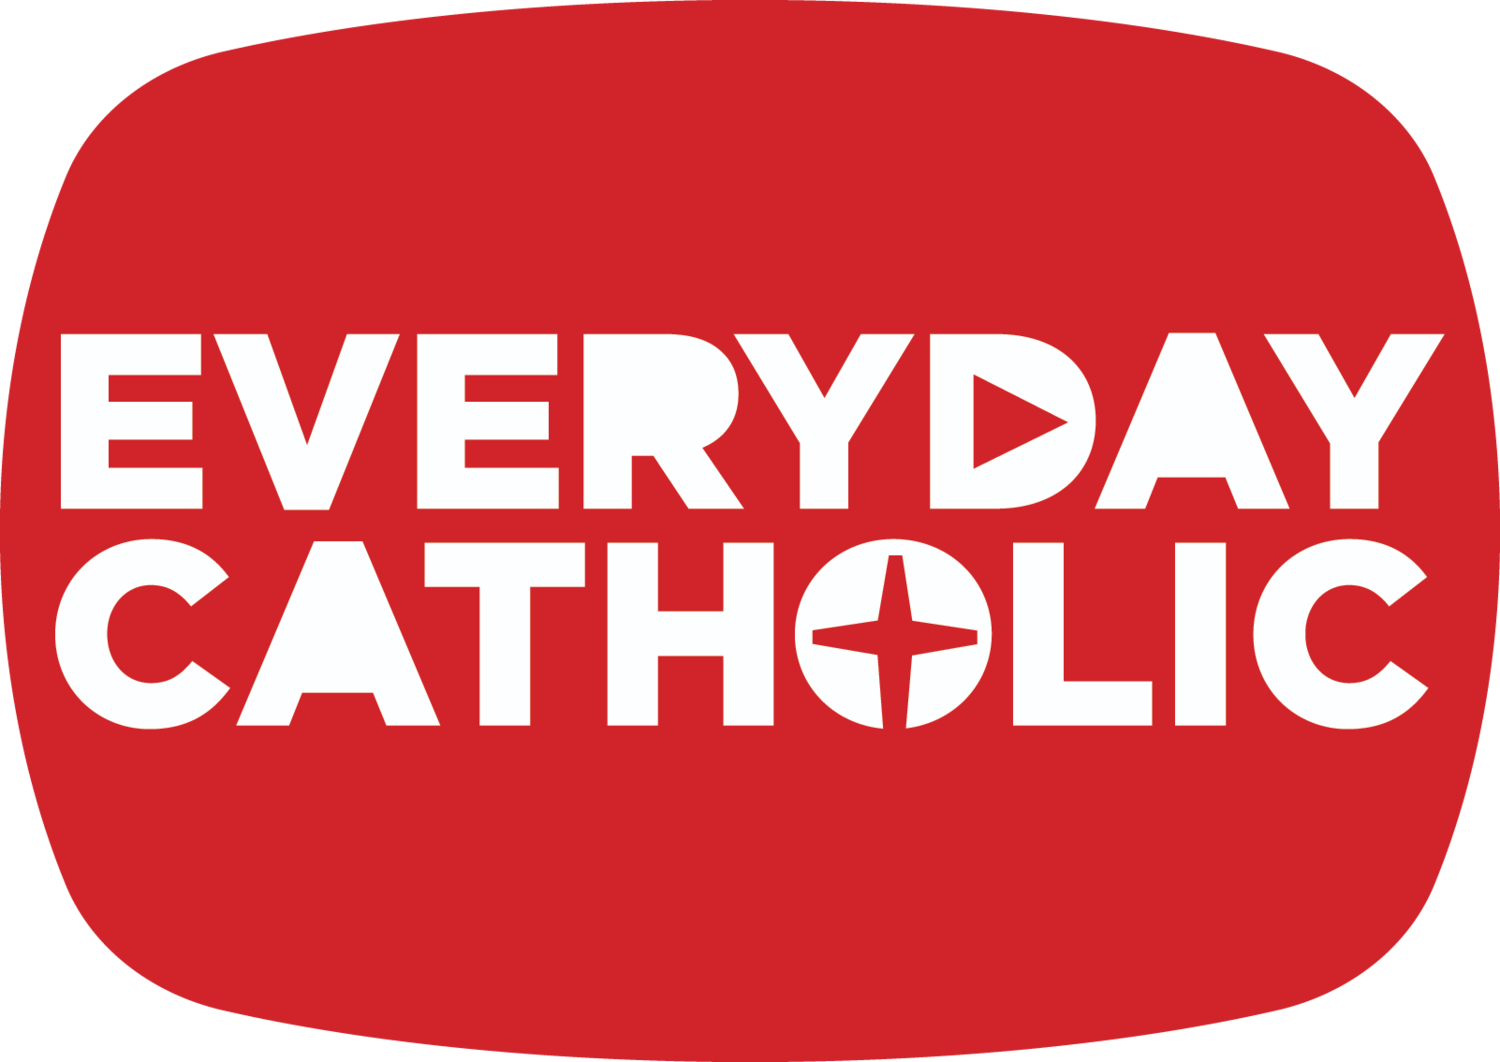 Everyday Catholic